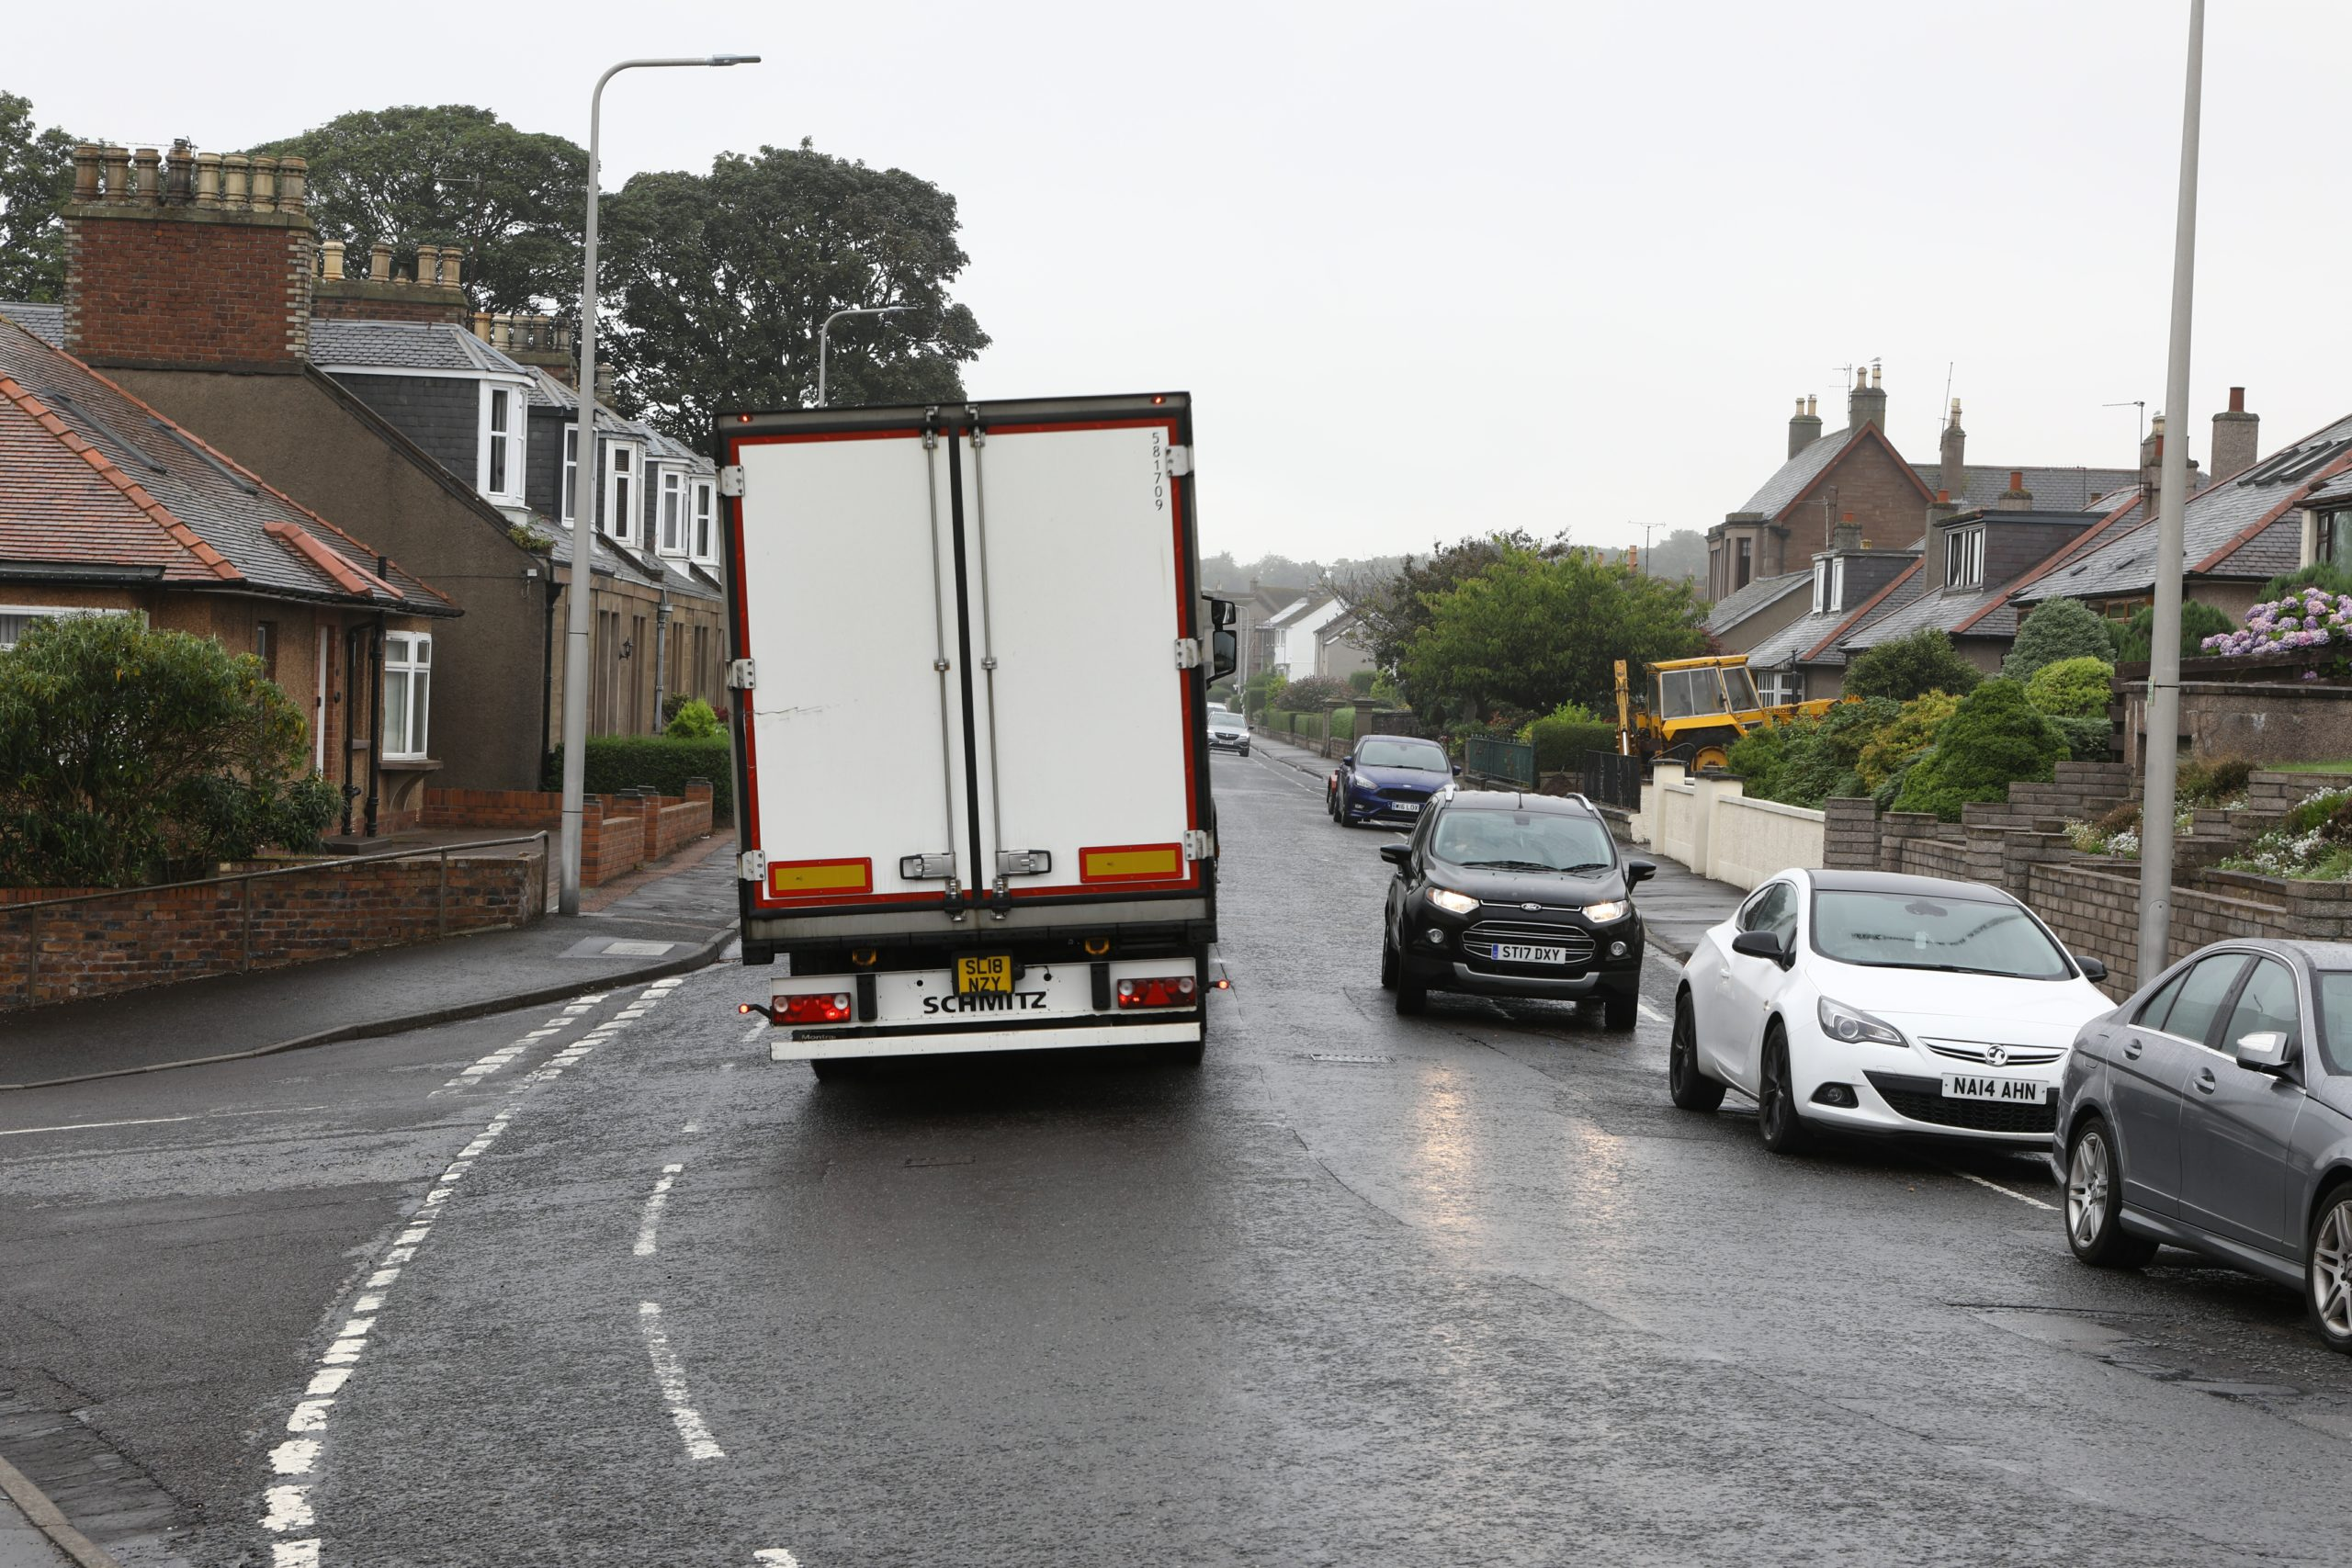 Trucks over 7.5 tonnes will be banned from Arbroath's Hayshead Road.